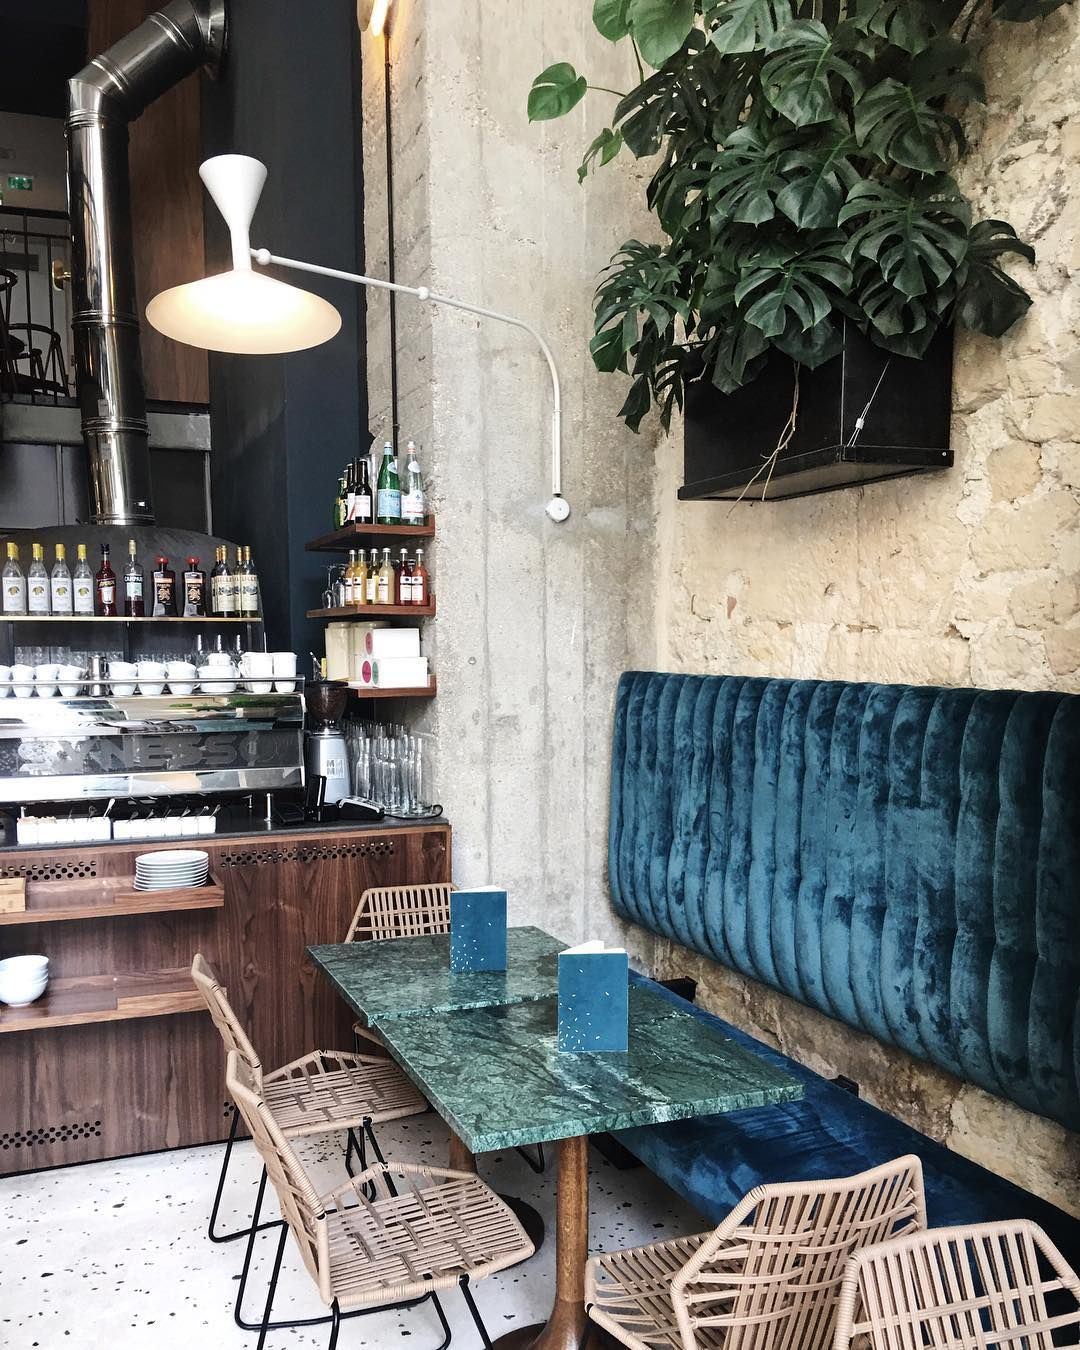 Baby Blue Kitchen Accessories: Daroco, Paris / Olivier Delannoy Et Francesca Errico